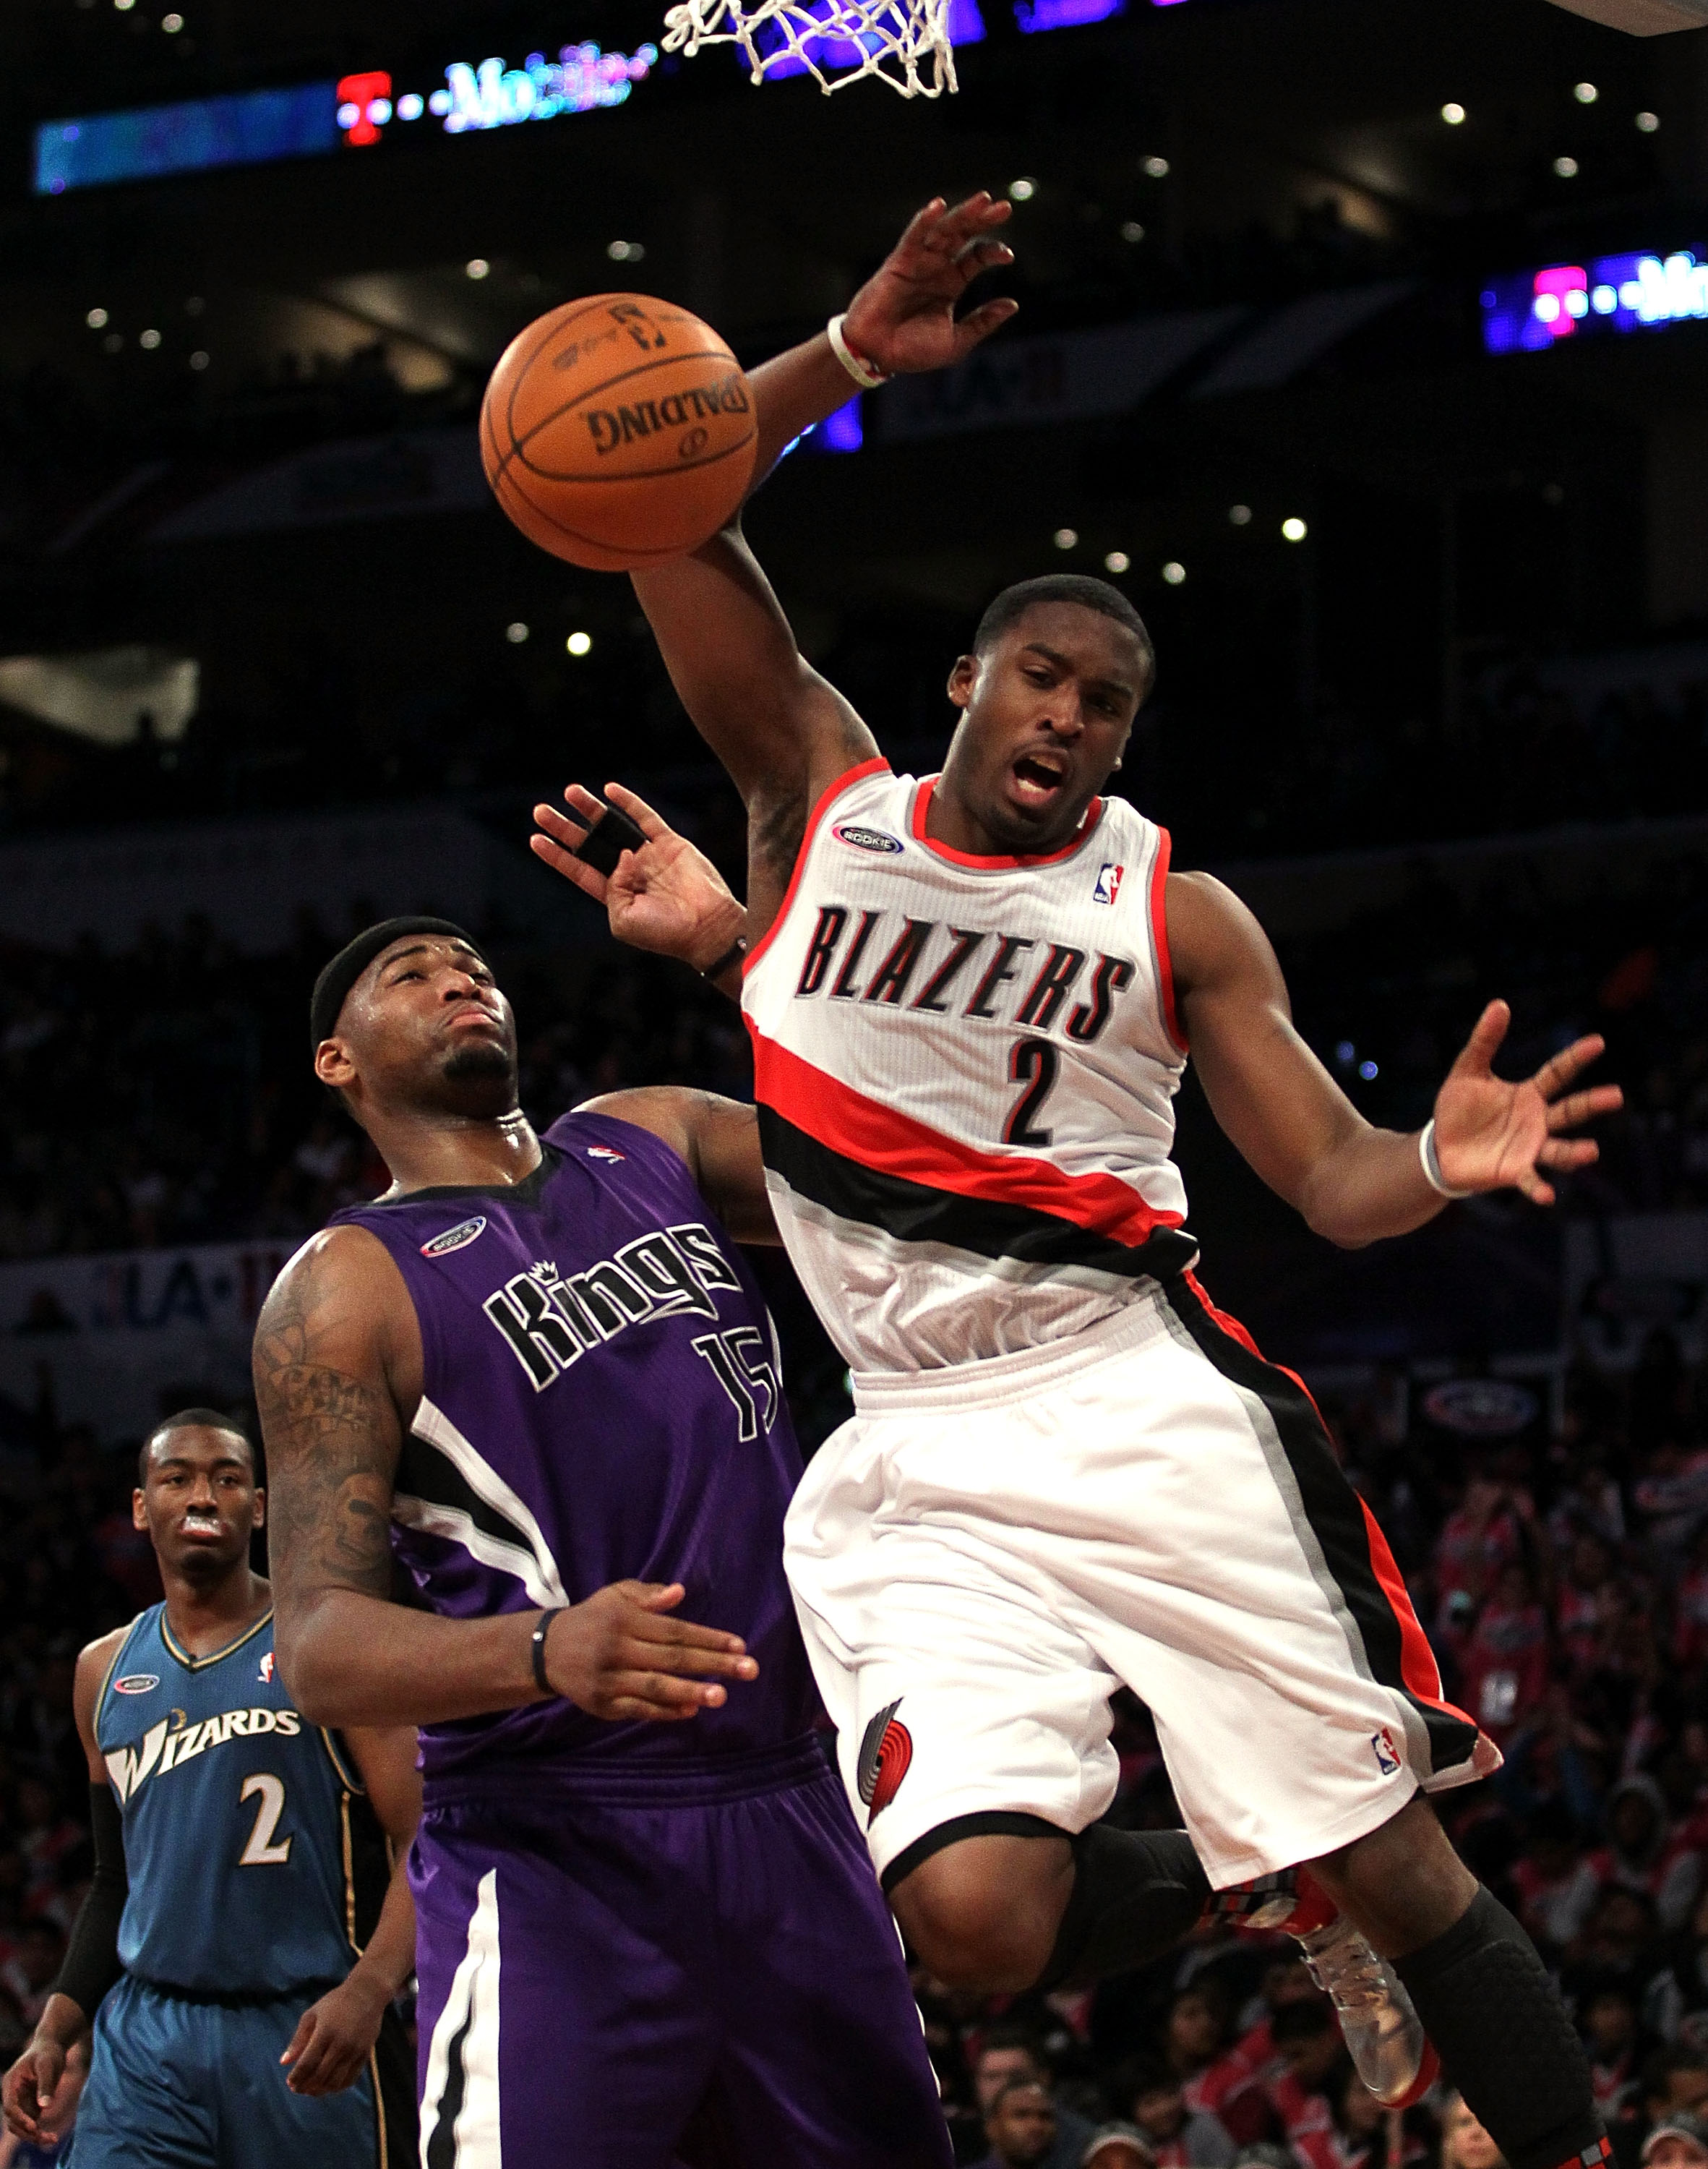 LOS ANGELES, CA - FEBRUARY 18:  Wesley Matthews #2 of the Portland Trailblazers and the Sophomore Team goes up for a shot against DeMarcus Cousins #15 of the Sacramento Kings and the Rookie Team in the second half during the T-Mobile Rookie Challenge and